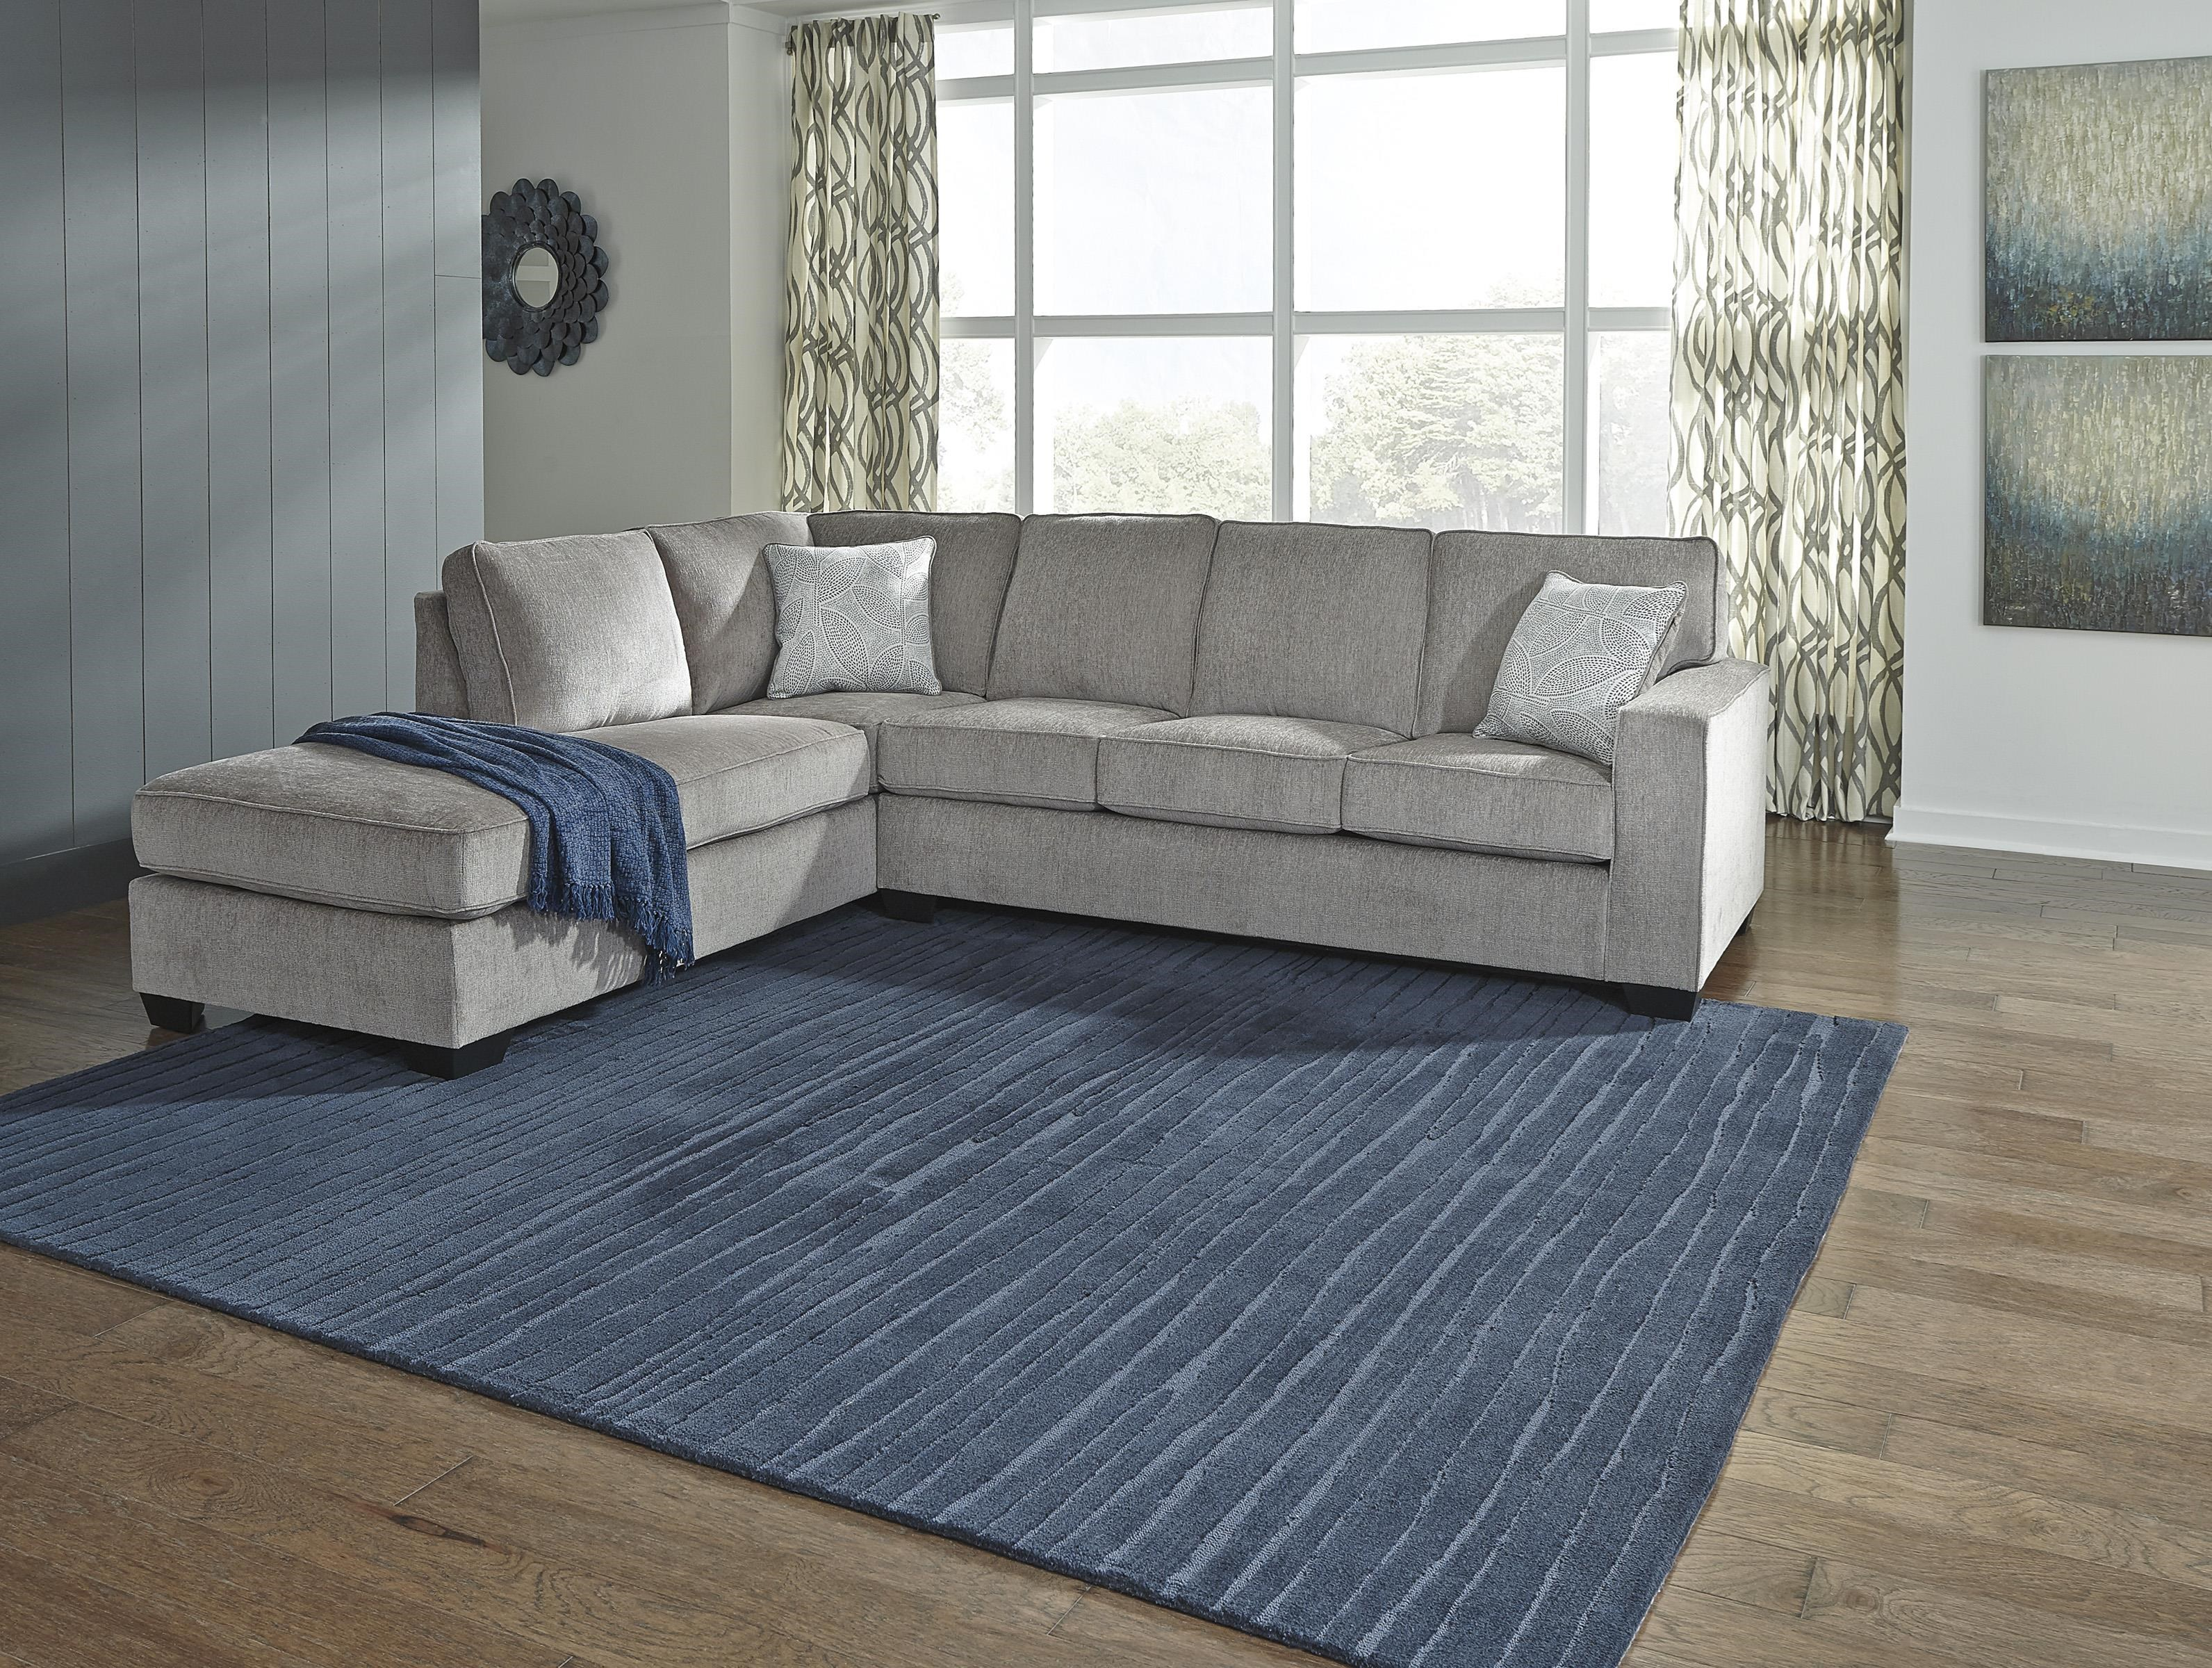 Altari 2 PC Sectional Set by Signature Design by Ashley at Sam Levitz Outlet